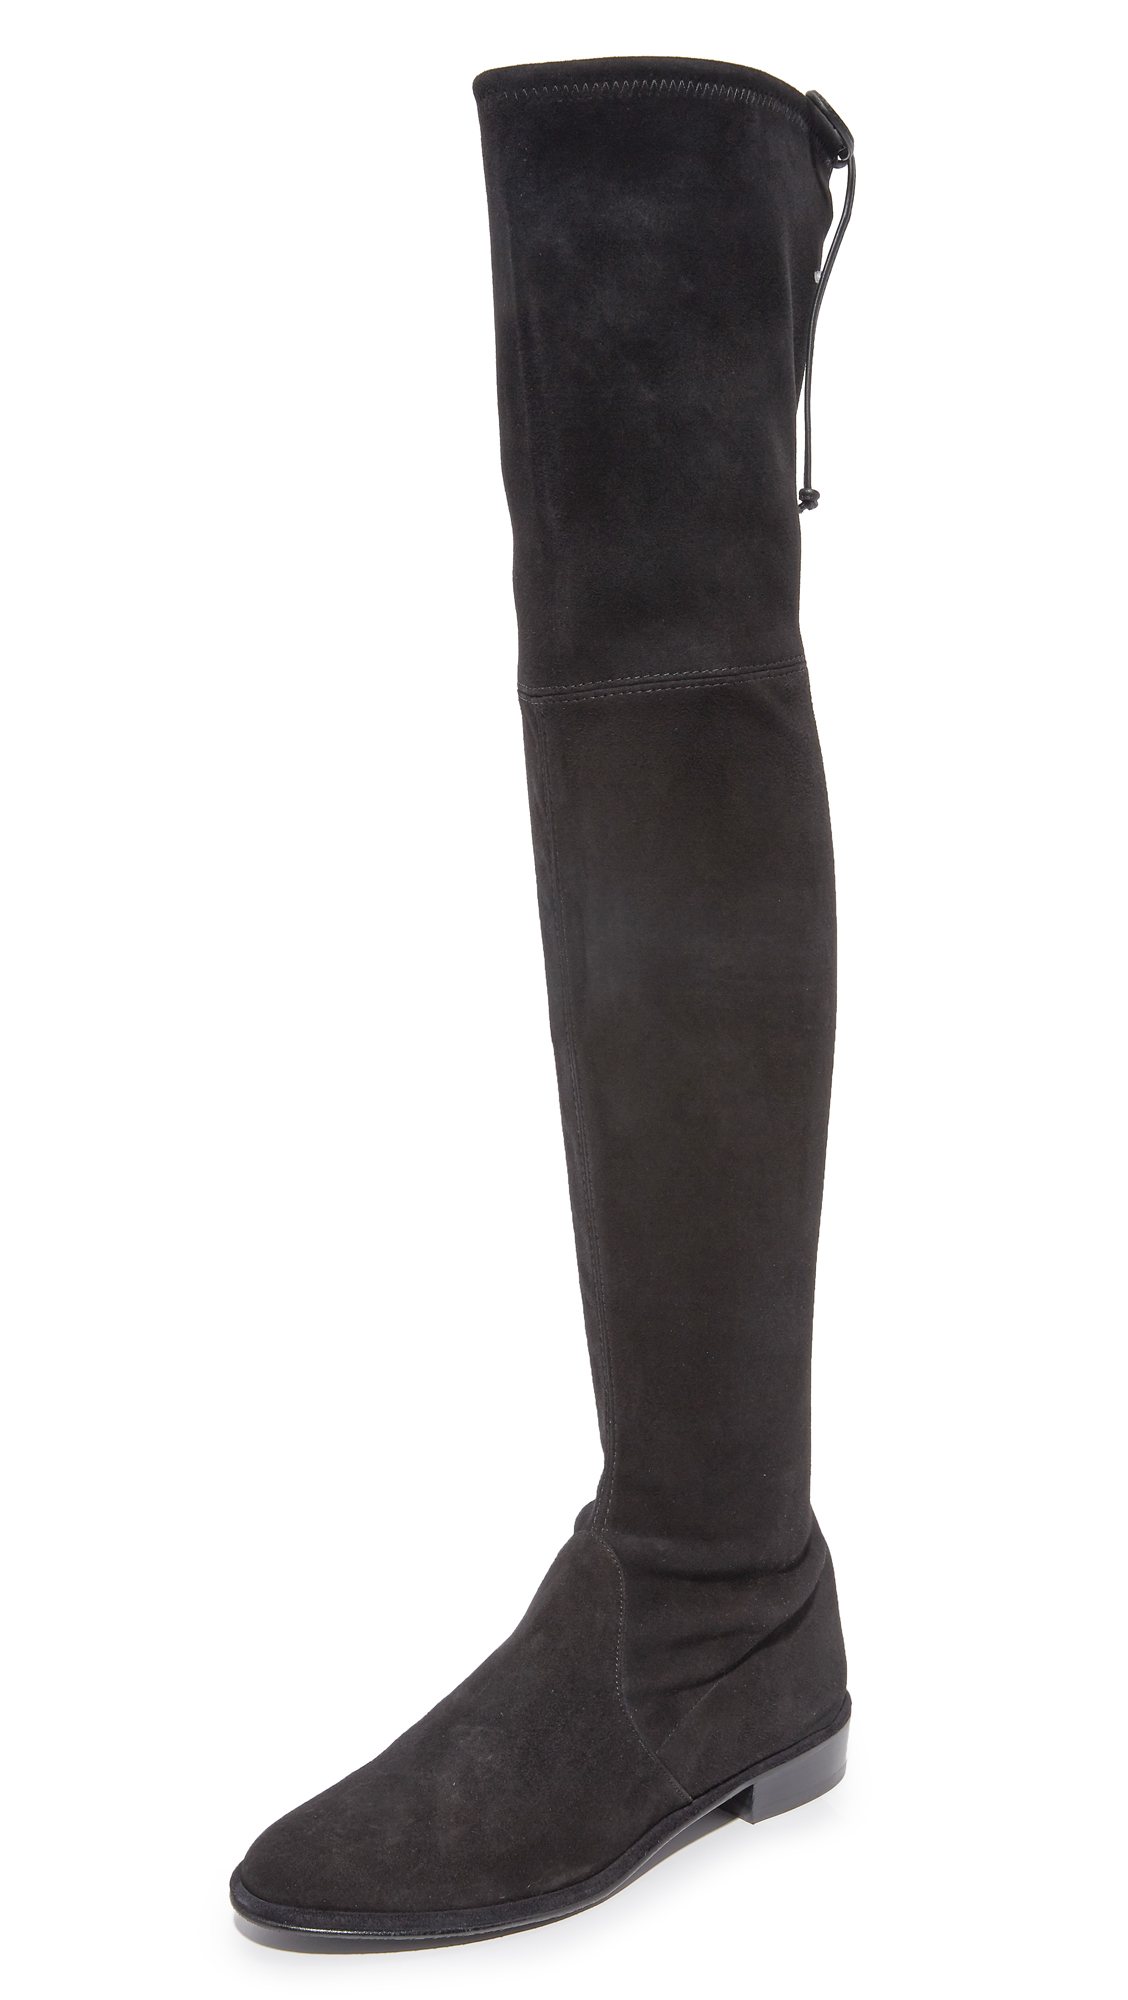 Stuart Weitzman Lowland Over the Knee Boots - Black